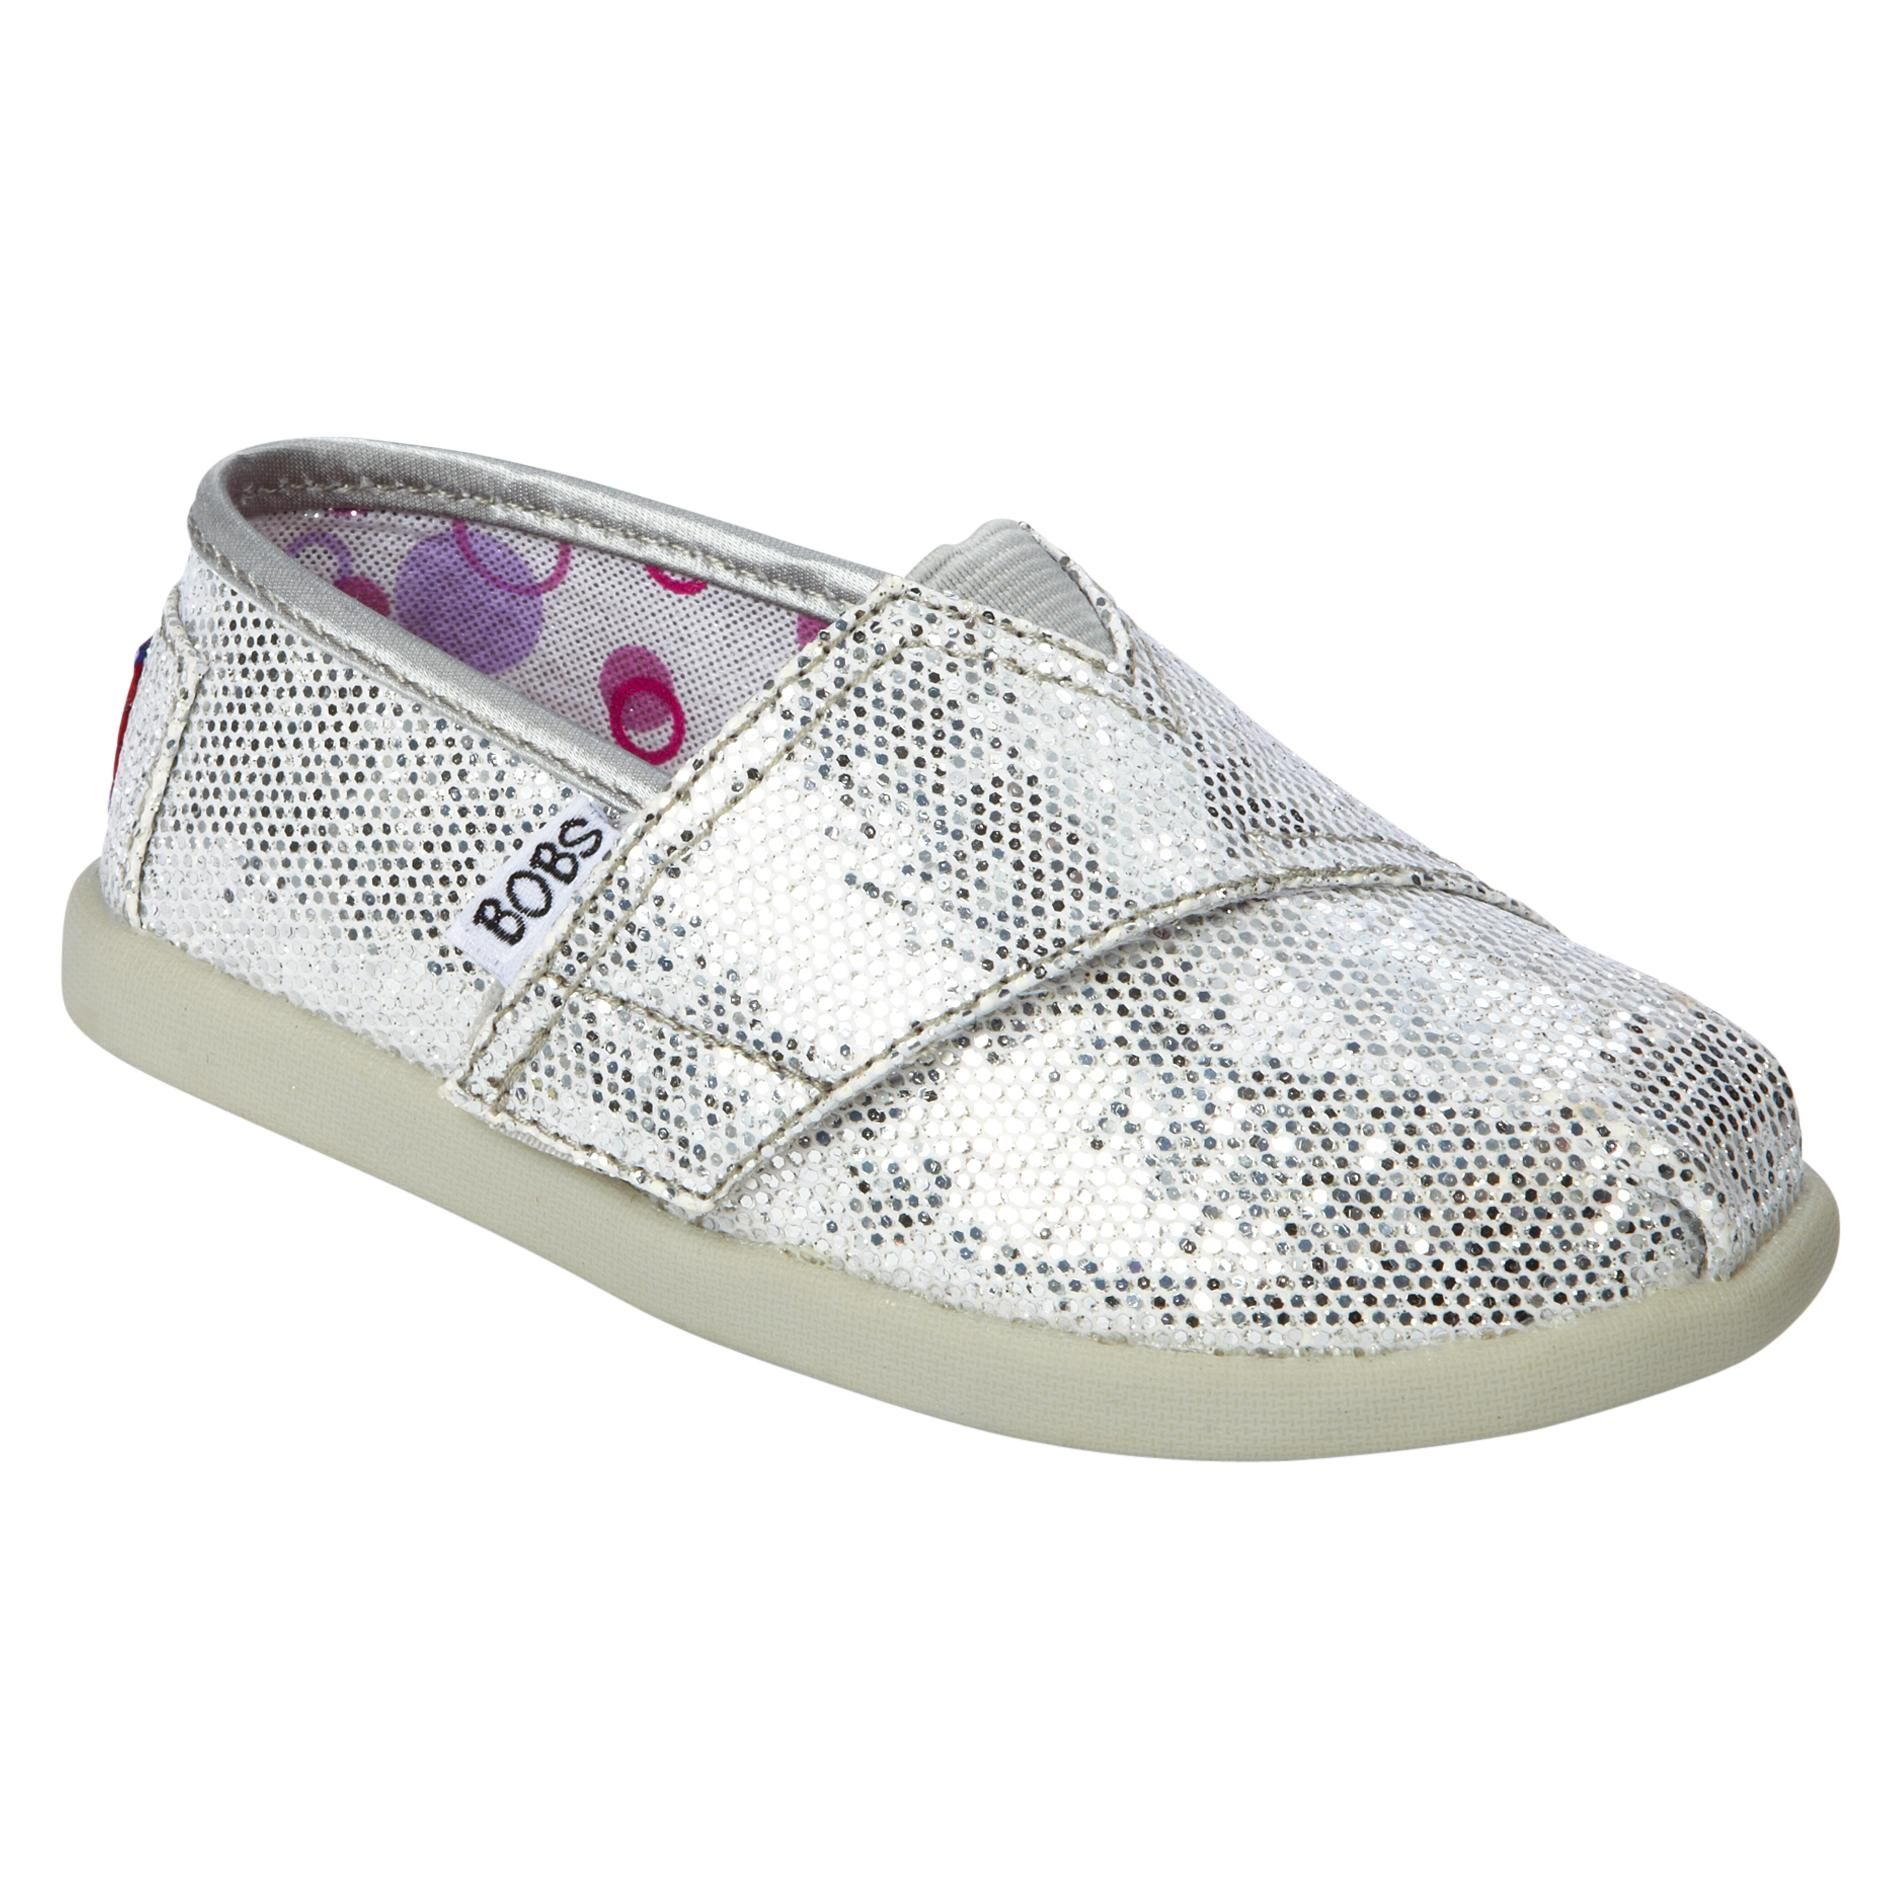 Skechers Toddler Girl s Bobs World Silver Shoes Toddler Girls